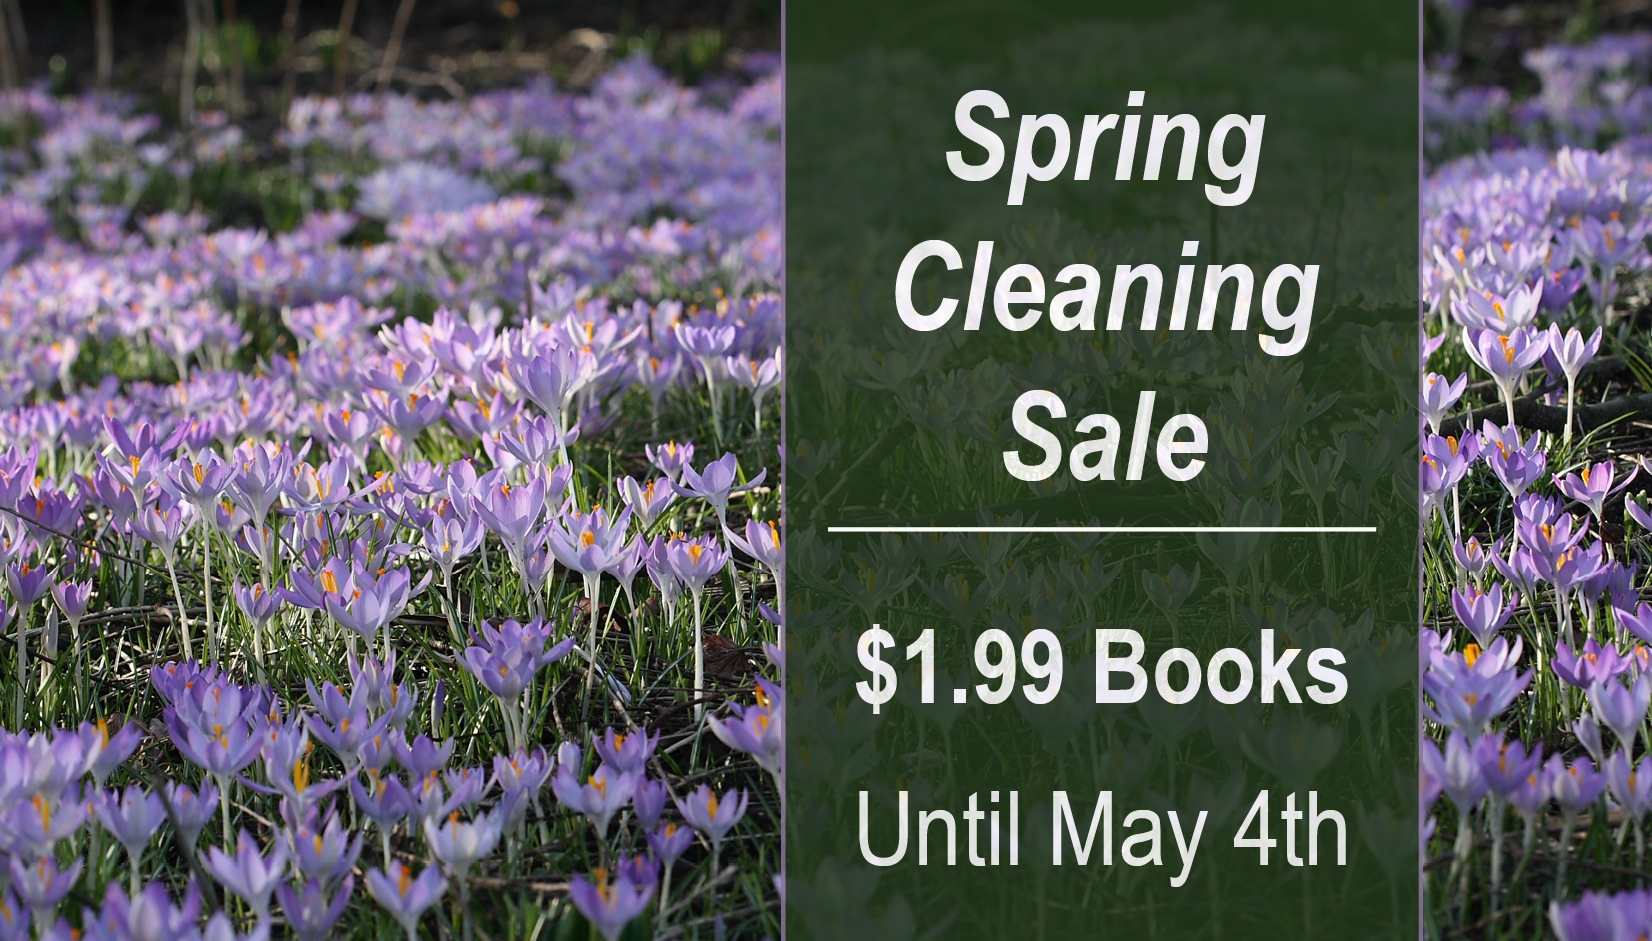 Spring Cleaning Sale: $1.99 Books